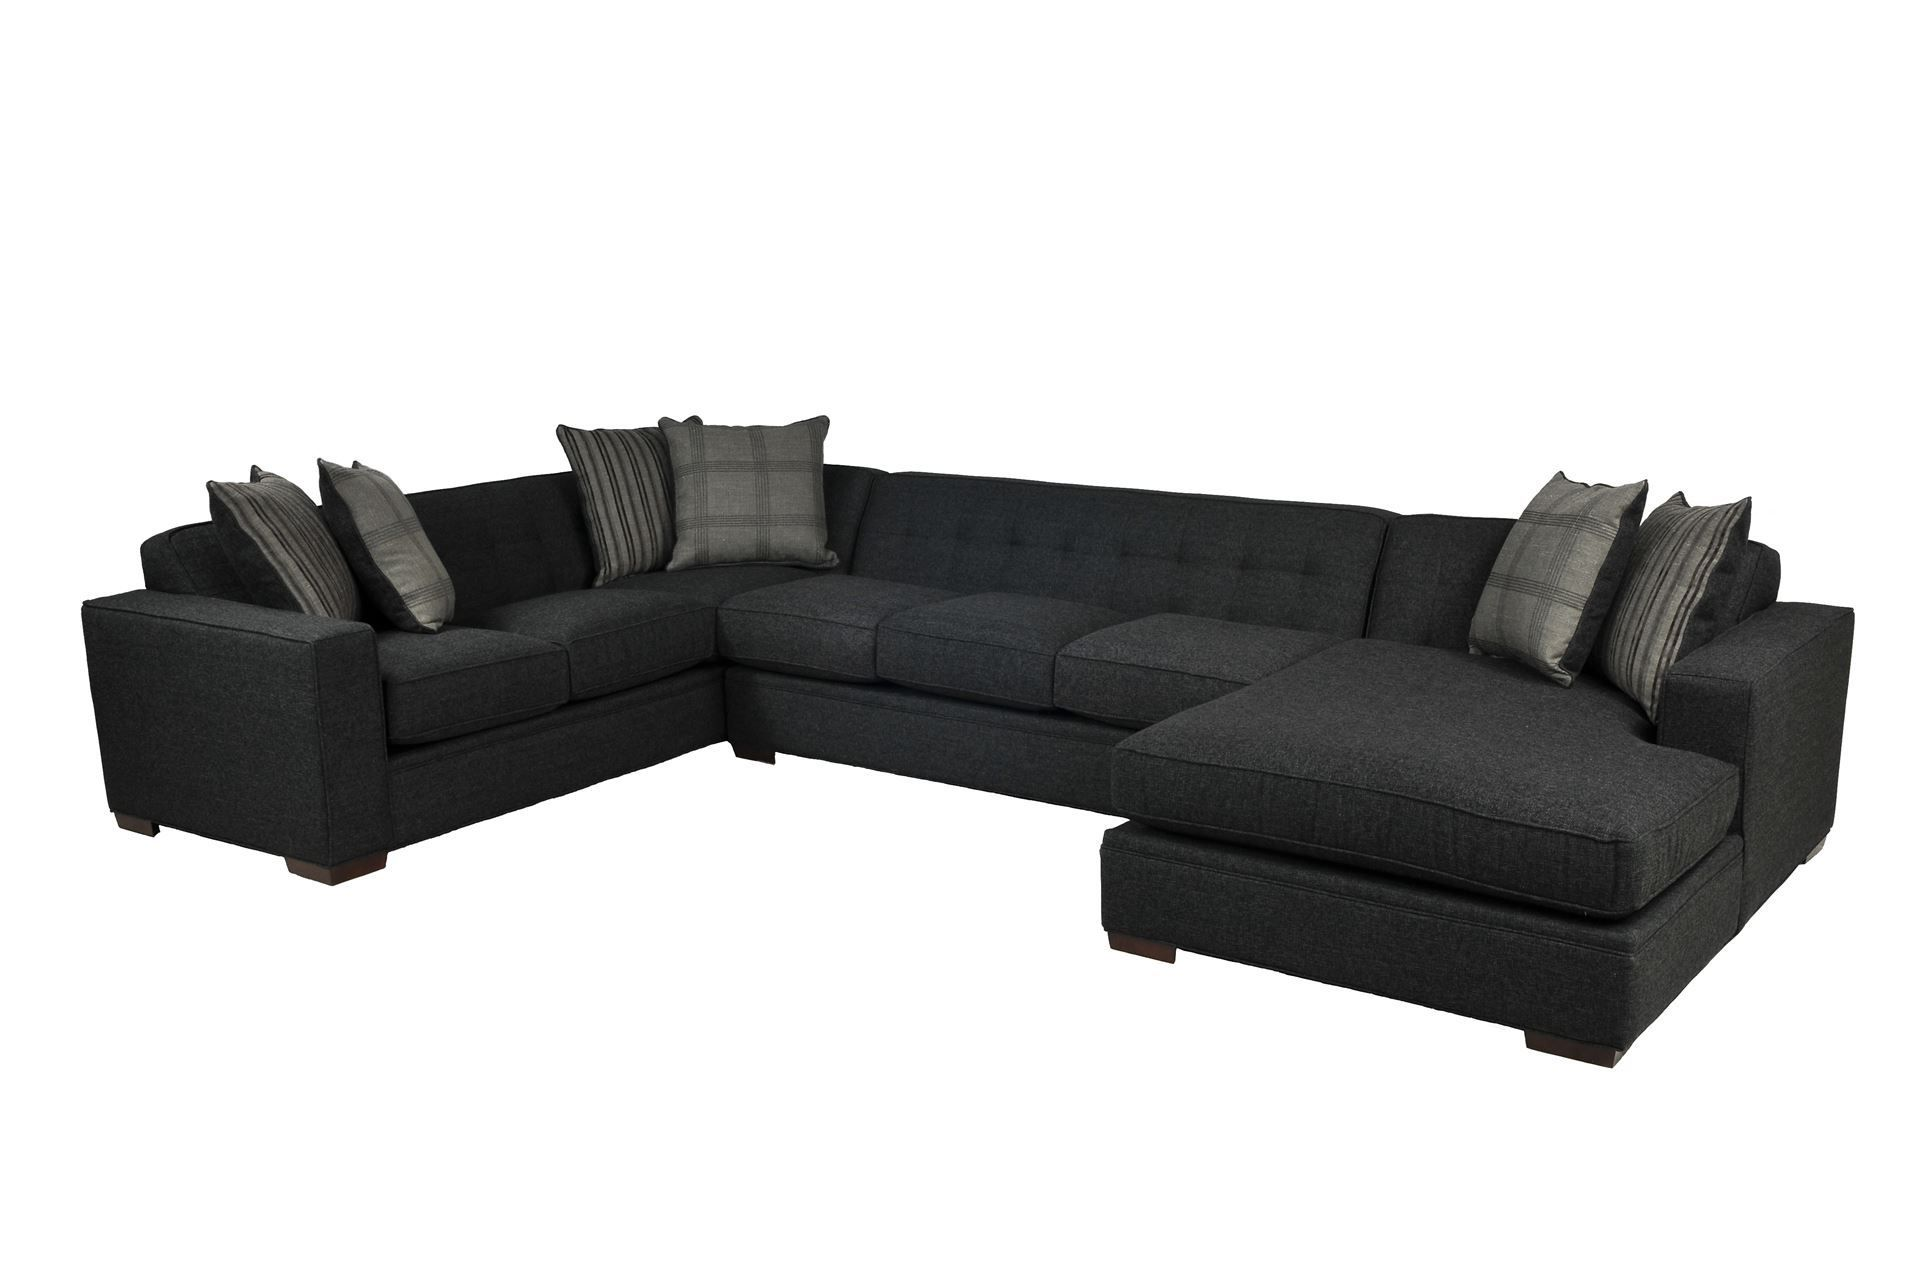 Costello 3 Piece Sectional